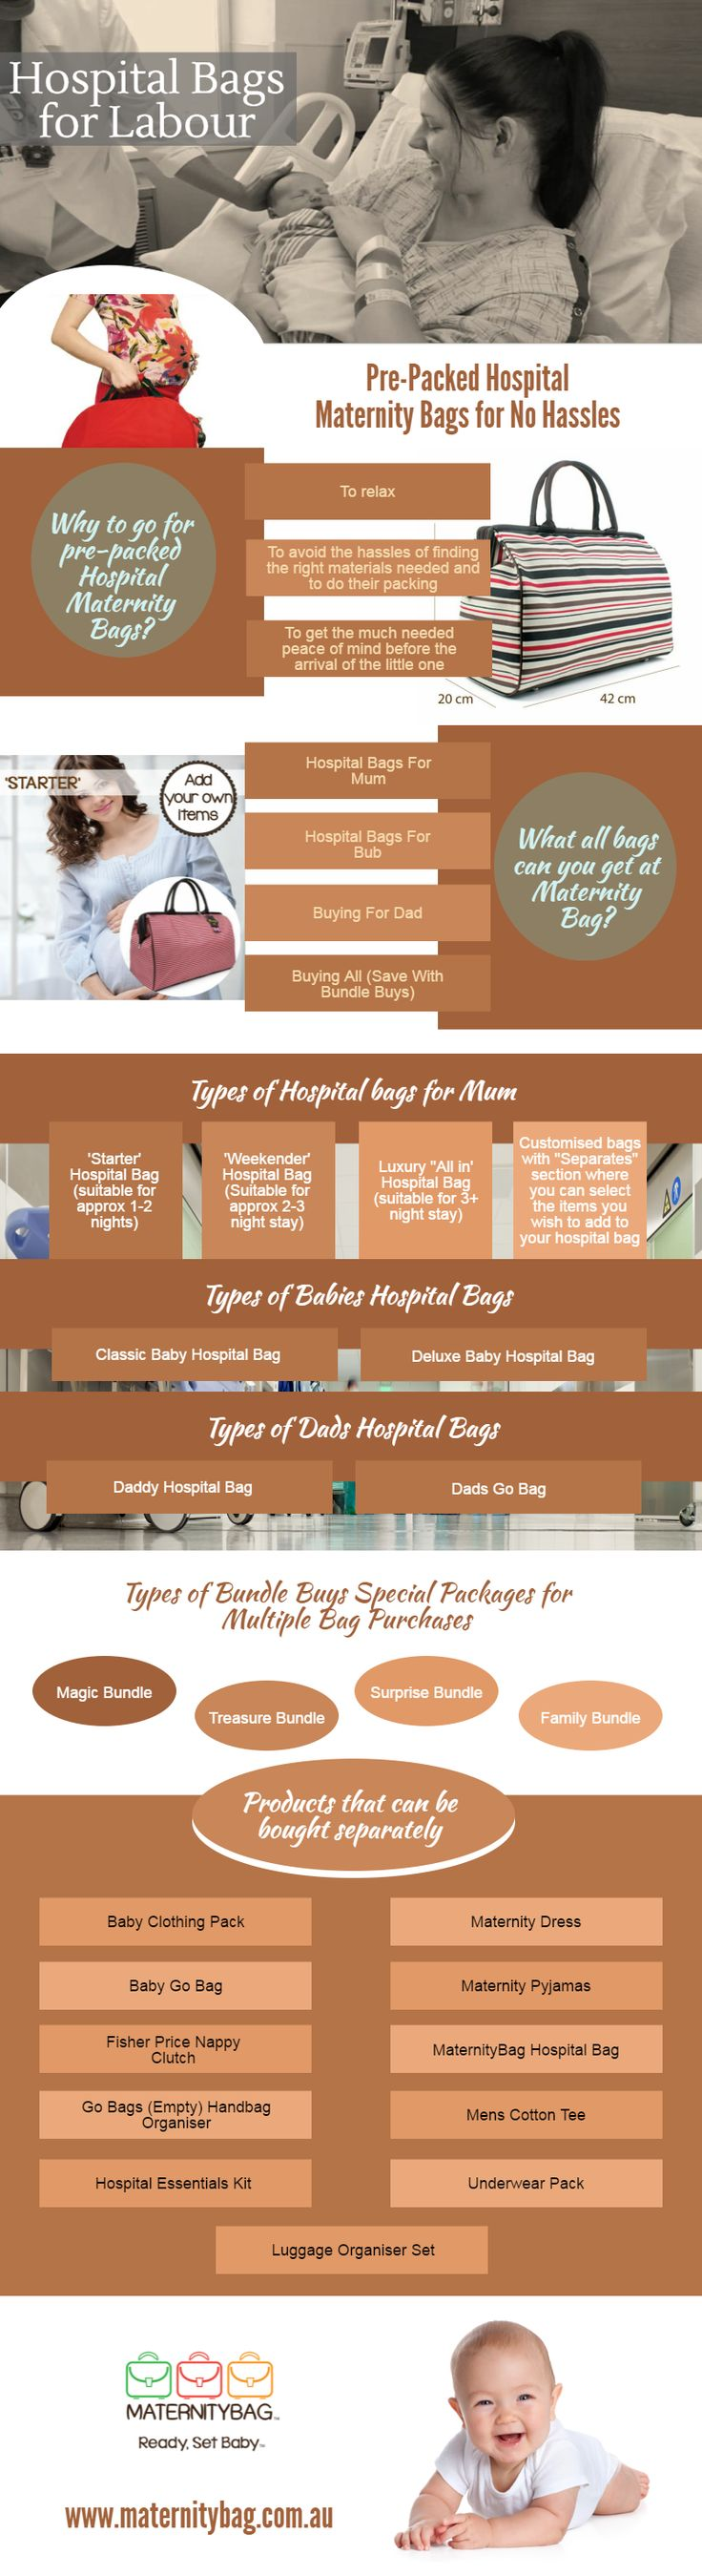 Pre-Packed Hospital Maternity Bags for No Hassles -  Why to go for #pre-#packed #Hospital #Maternity #Bags? To relax and avoid the hassles of finding the right materials needed and to do their packing, to get the much needed peace of mind before the arrival of the little one. For more detail, look on this infographic image.